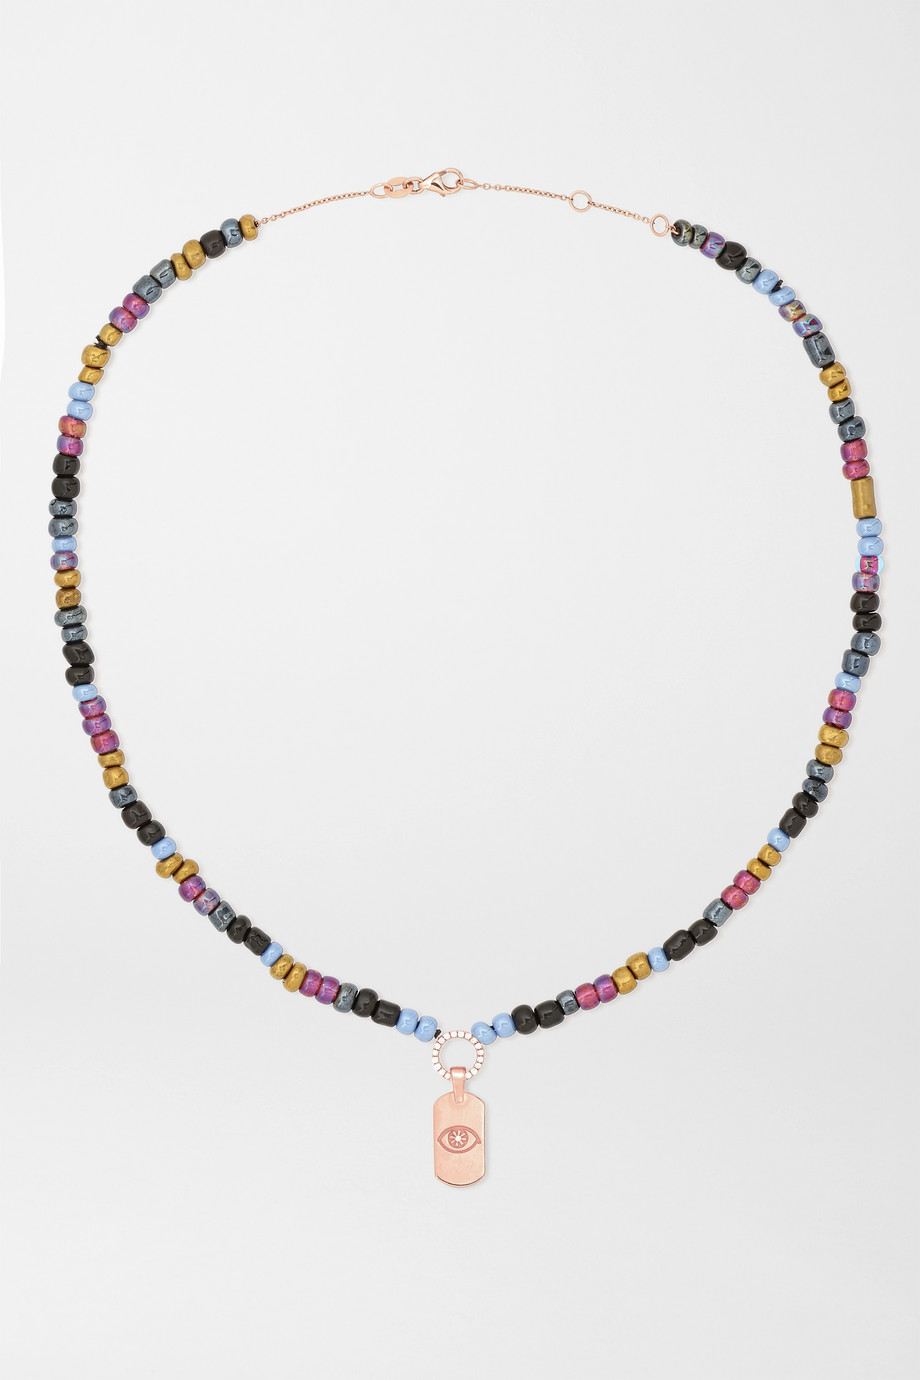 Diane Kordas Collier en or rose 14 carats, perles et diamants Evil Eye